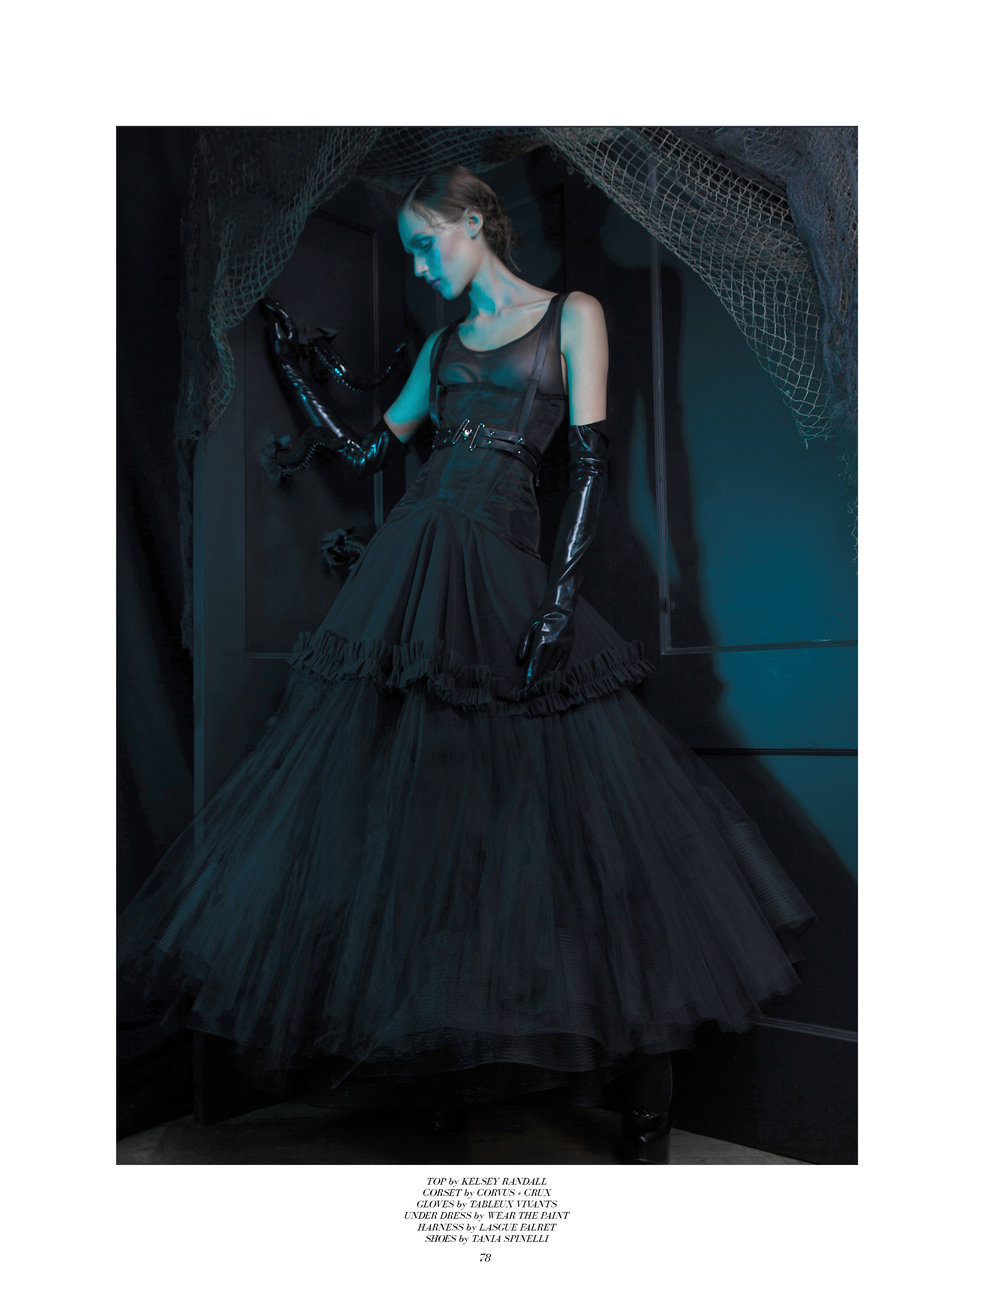 Copy of style noir magazine editorial featuring kelsey randall black mesh crinoline dress sheer ruffle hem godets